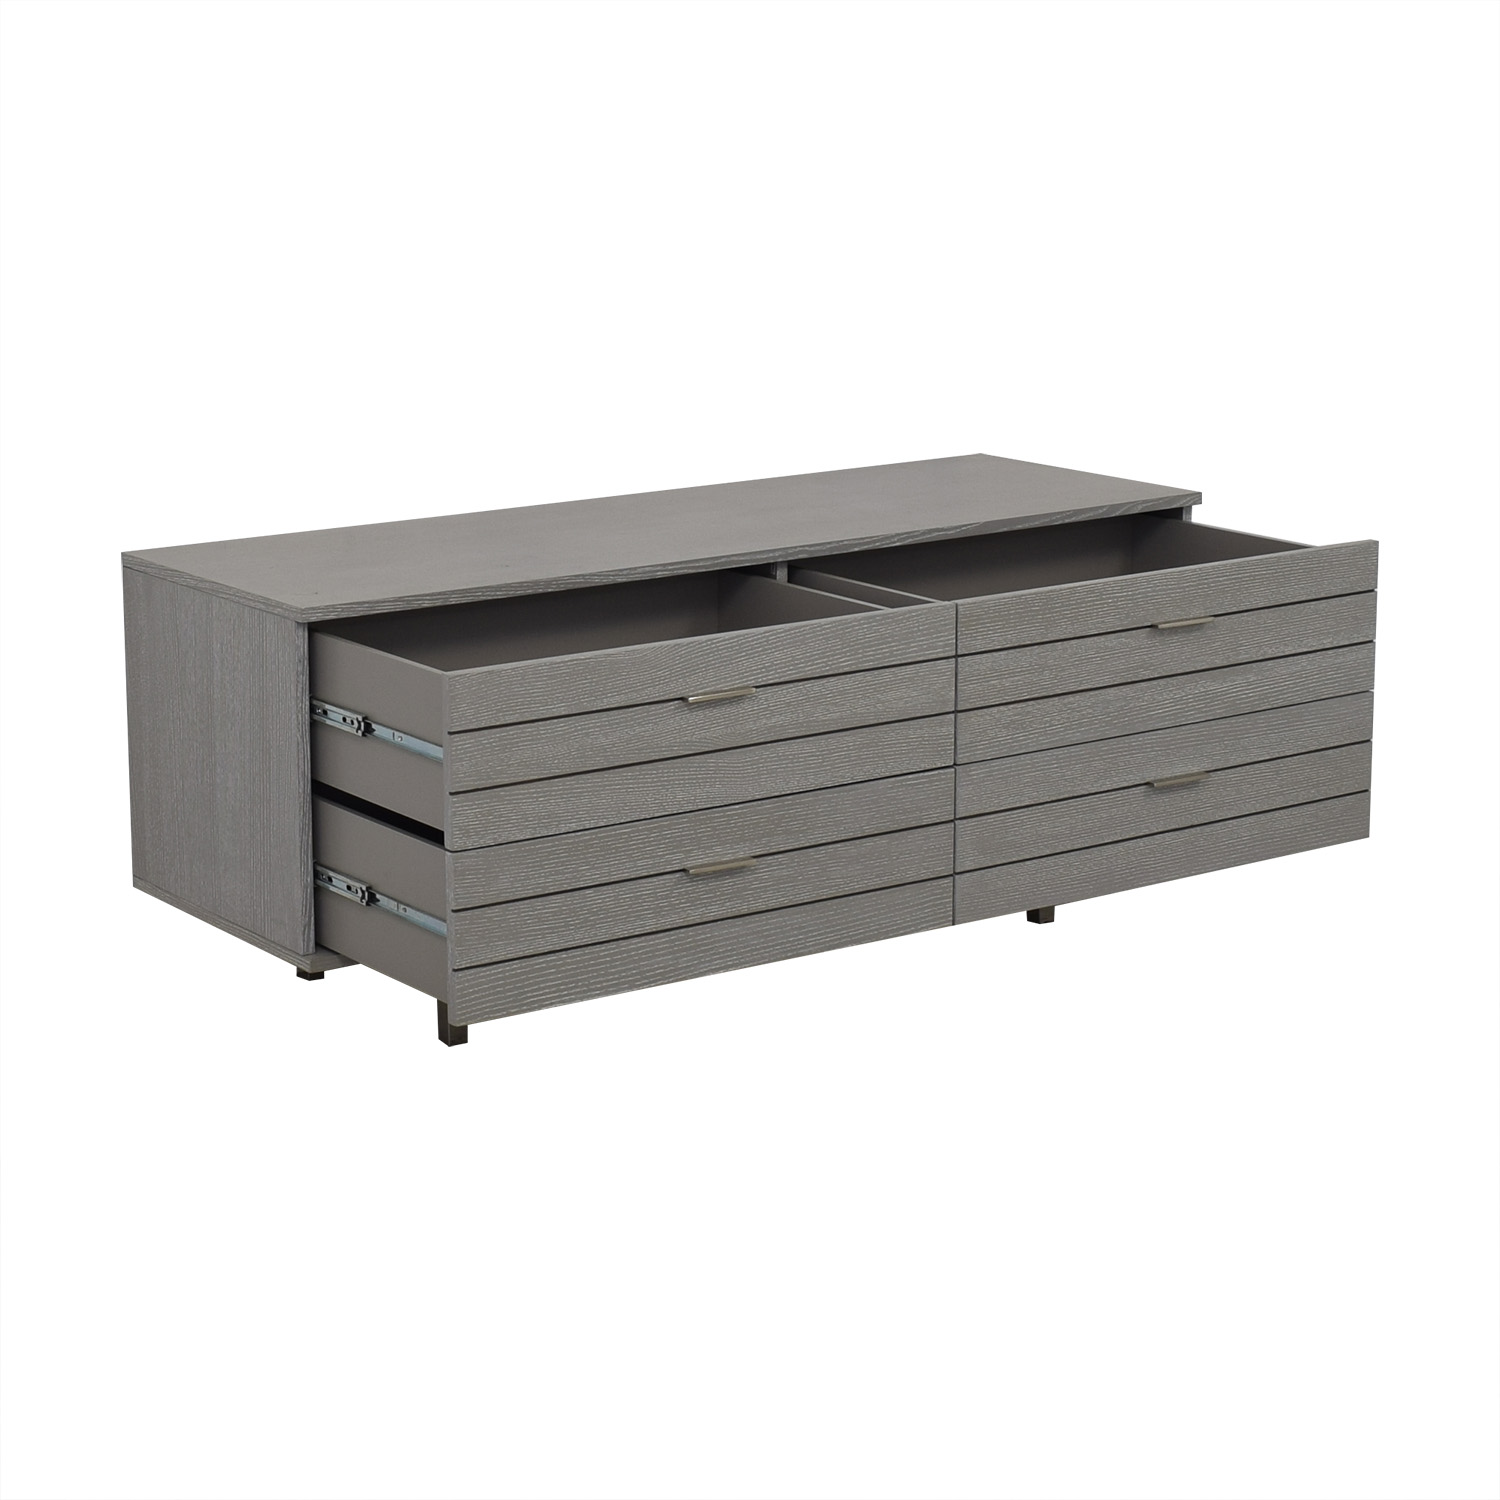 CB2 CB2 Linear Low Dresser coupon